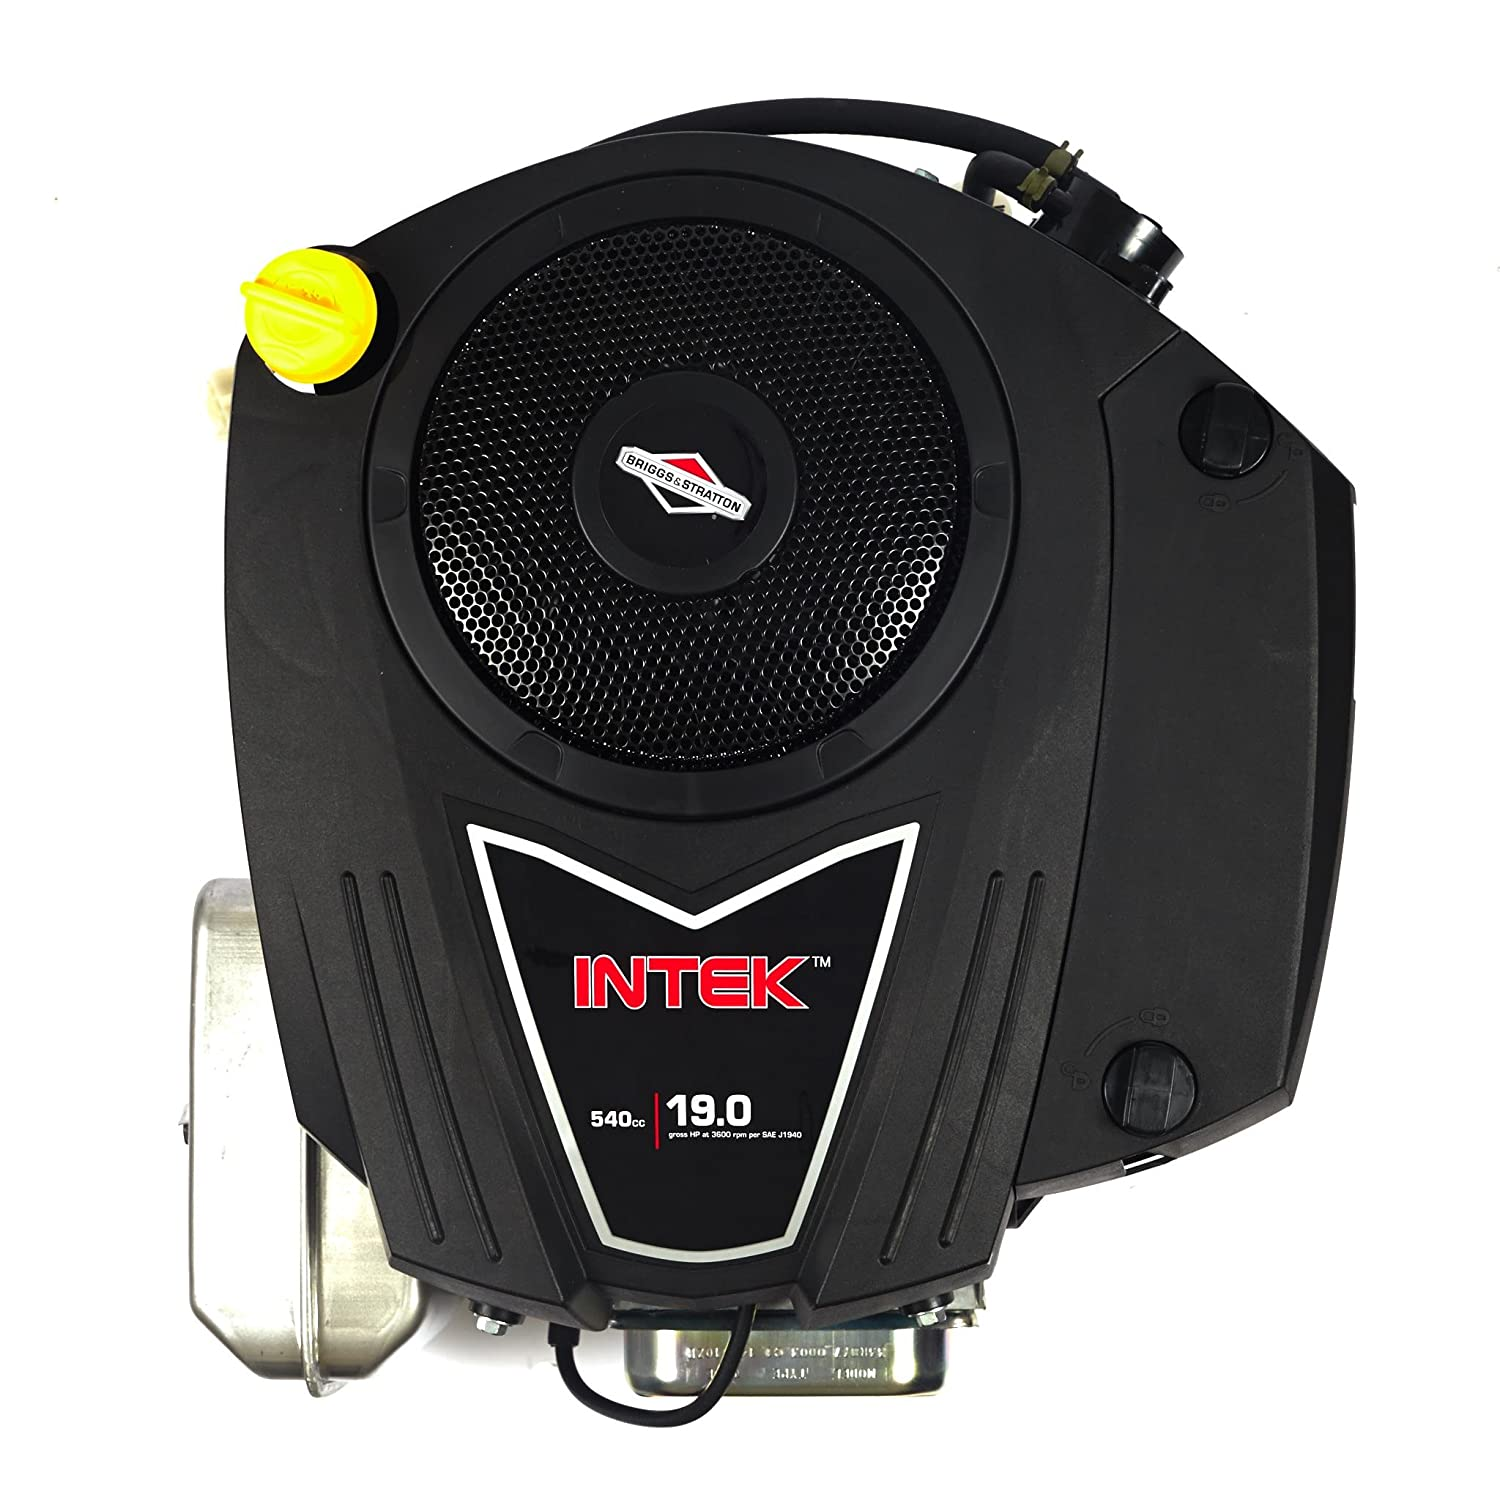 Briggs Stratton 33r877 0003 G1 540cc 19 Gross Hp Intek 16 And Wiring Diagram Free Picture Vertical Ohv Engine With 1 Inch Diameter By 3 5 32 Length Crankshaft Tapped